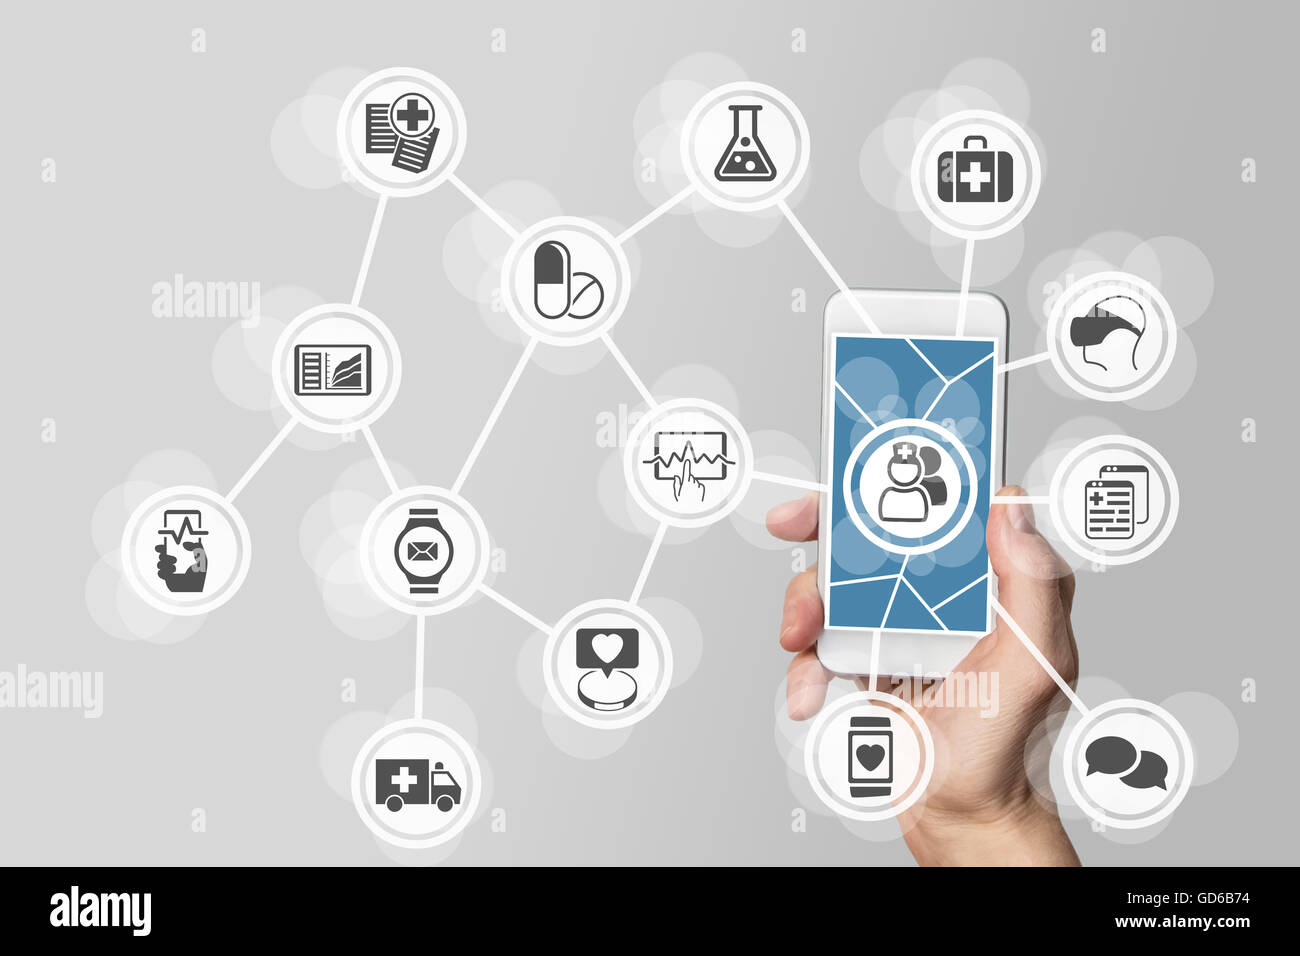 E-healthcare concept with hand holding smart phone - Stock Image